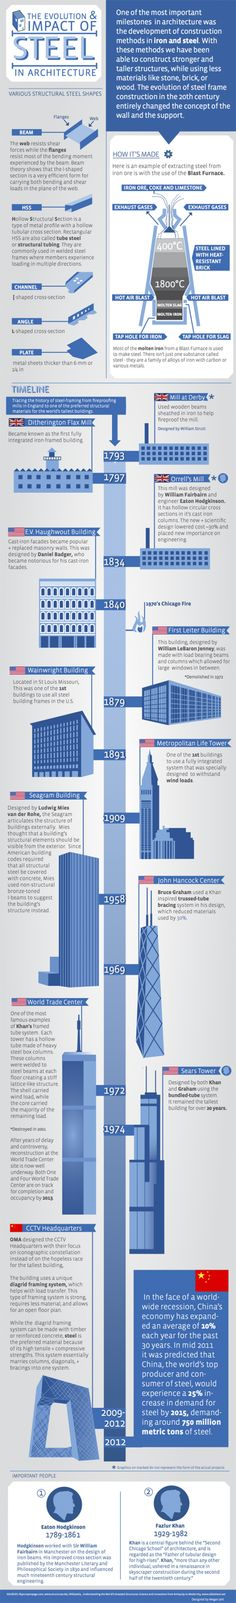 The evolution & impact of steel in Architecture - Infographic